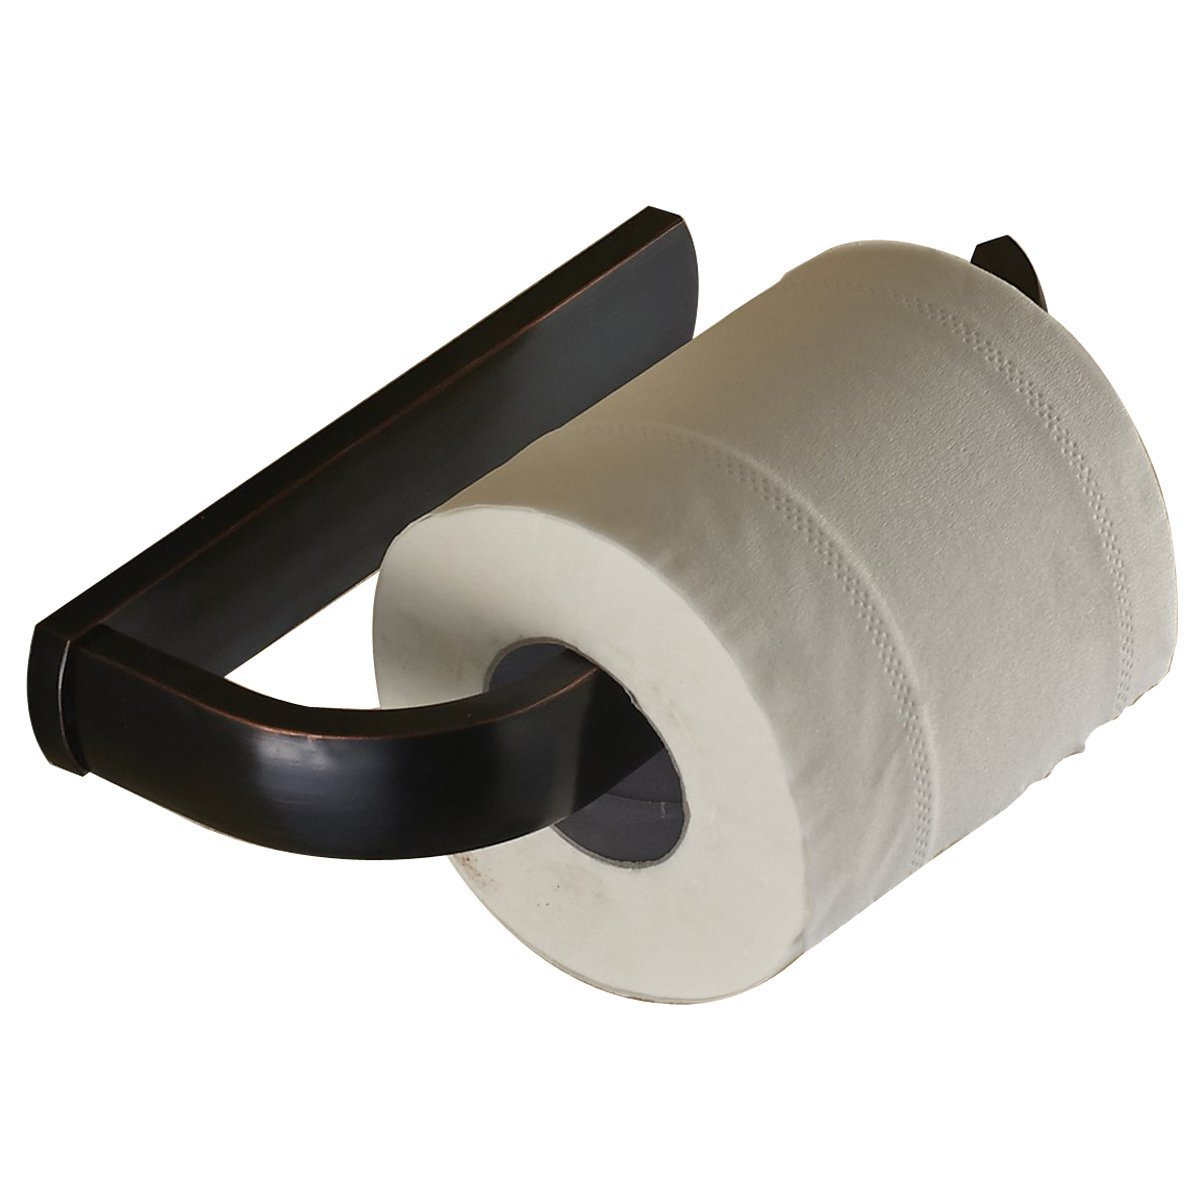 Leyden Black Oil Rubbed Bronze Finish Half Open Toilet Roll Paper Rail Holder Wall Mounted Brass Material Convenient Toilet Tissue Single Rail Holder